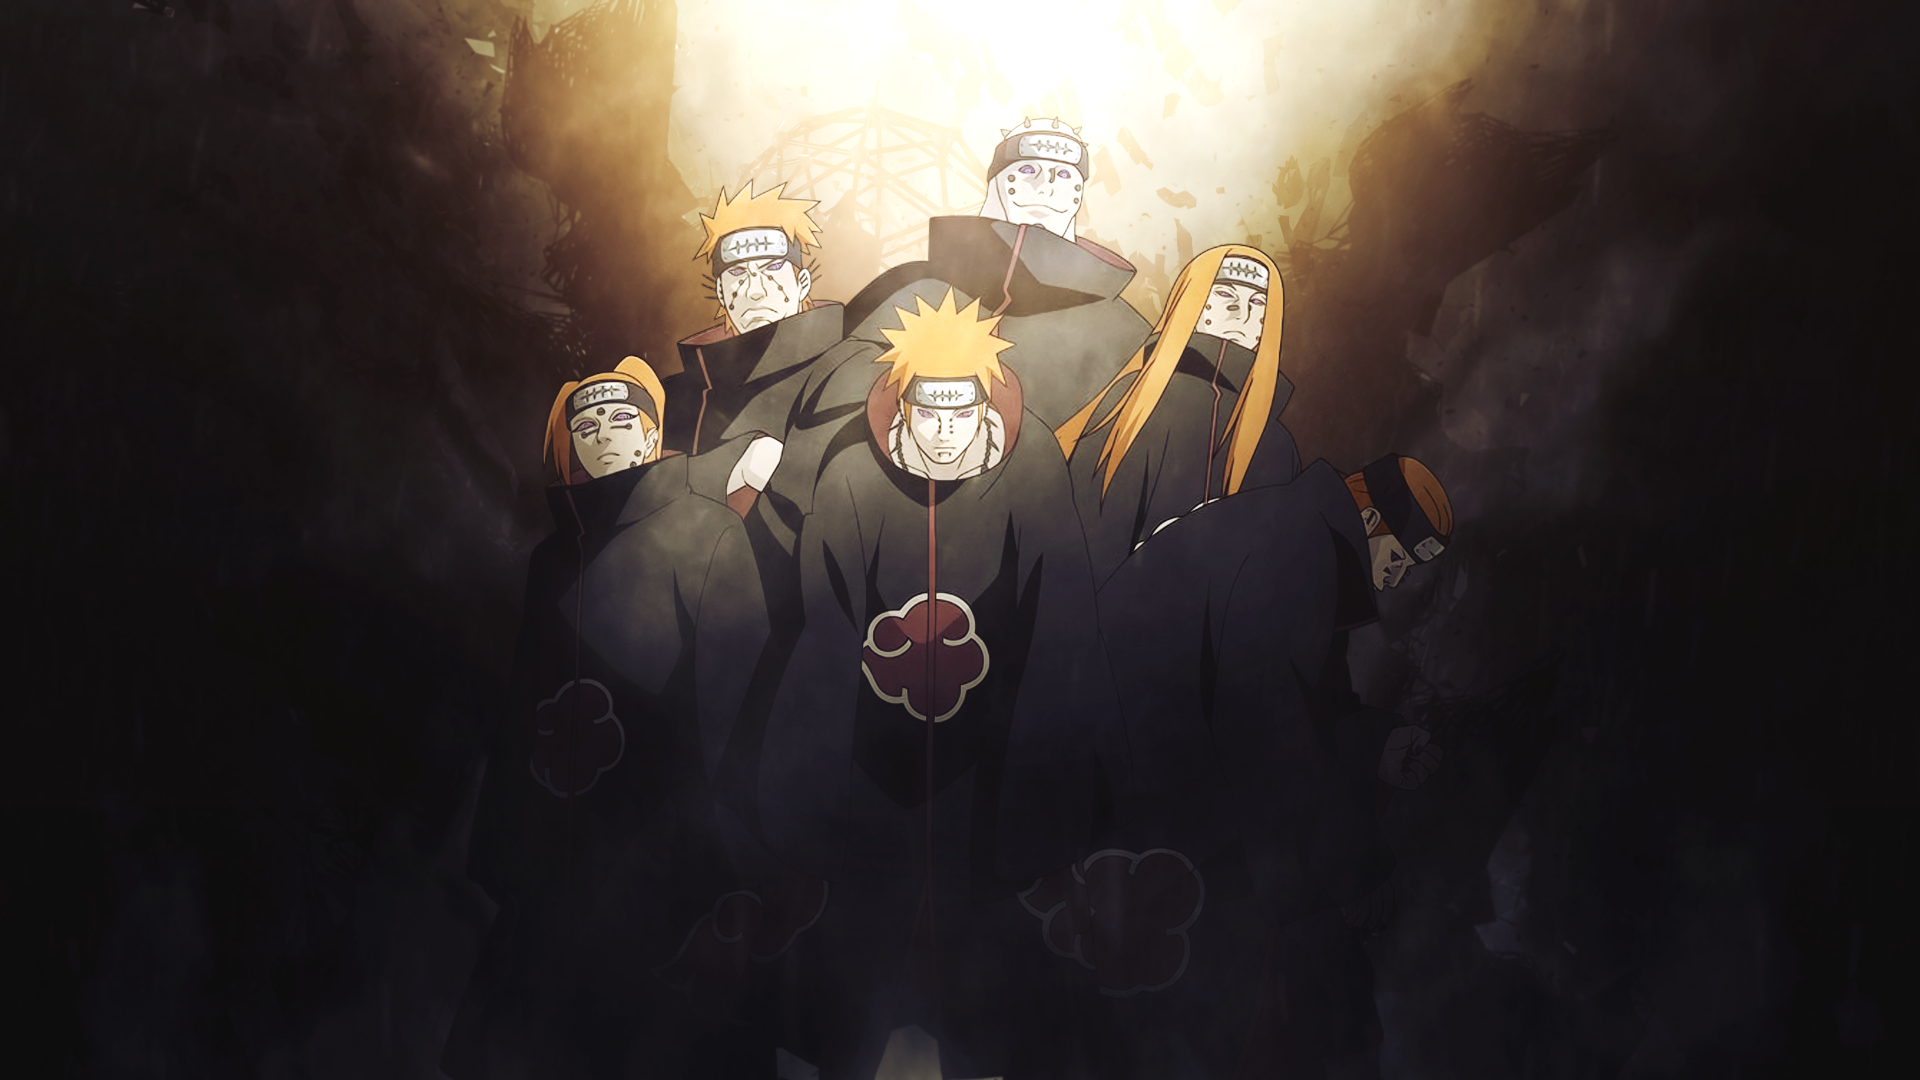 6 paths of pain naruto